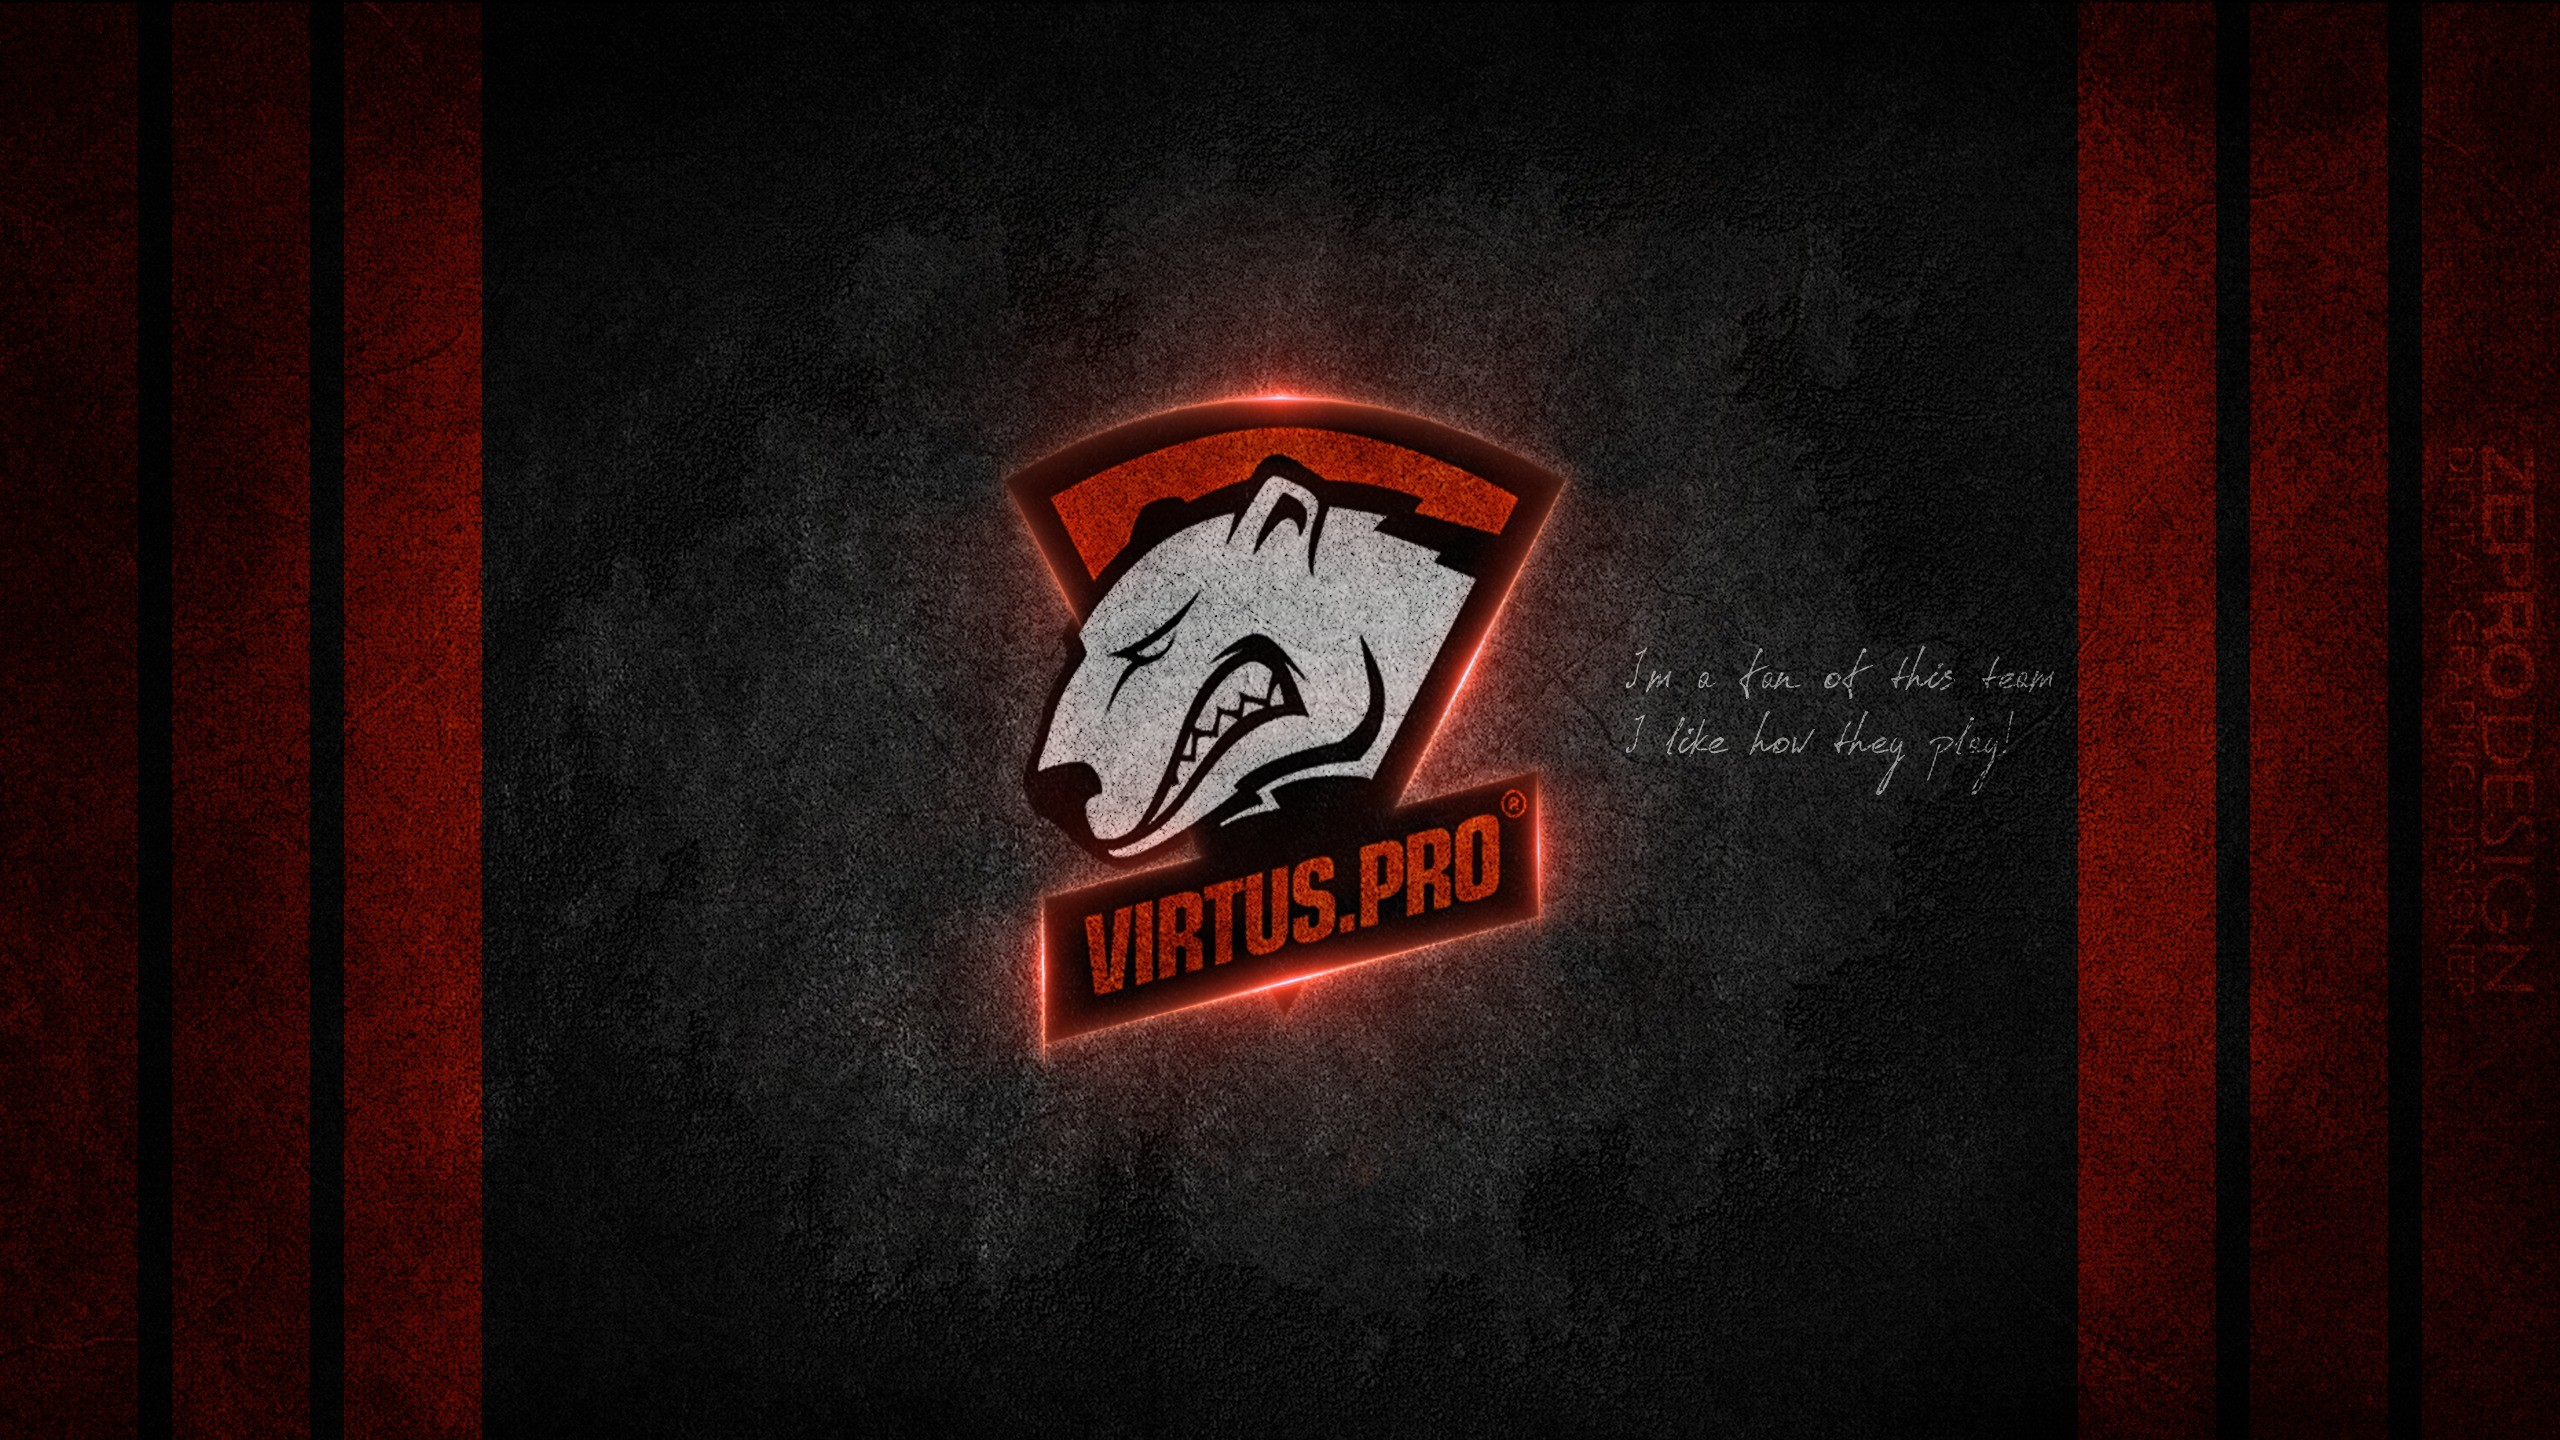 2560x1440 Wallpaper Logo Emblem virtus pro Games